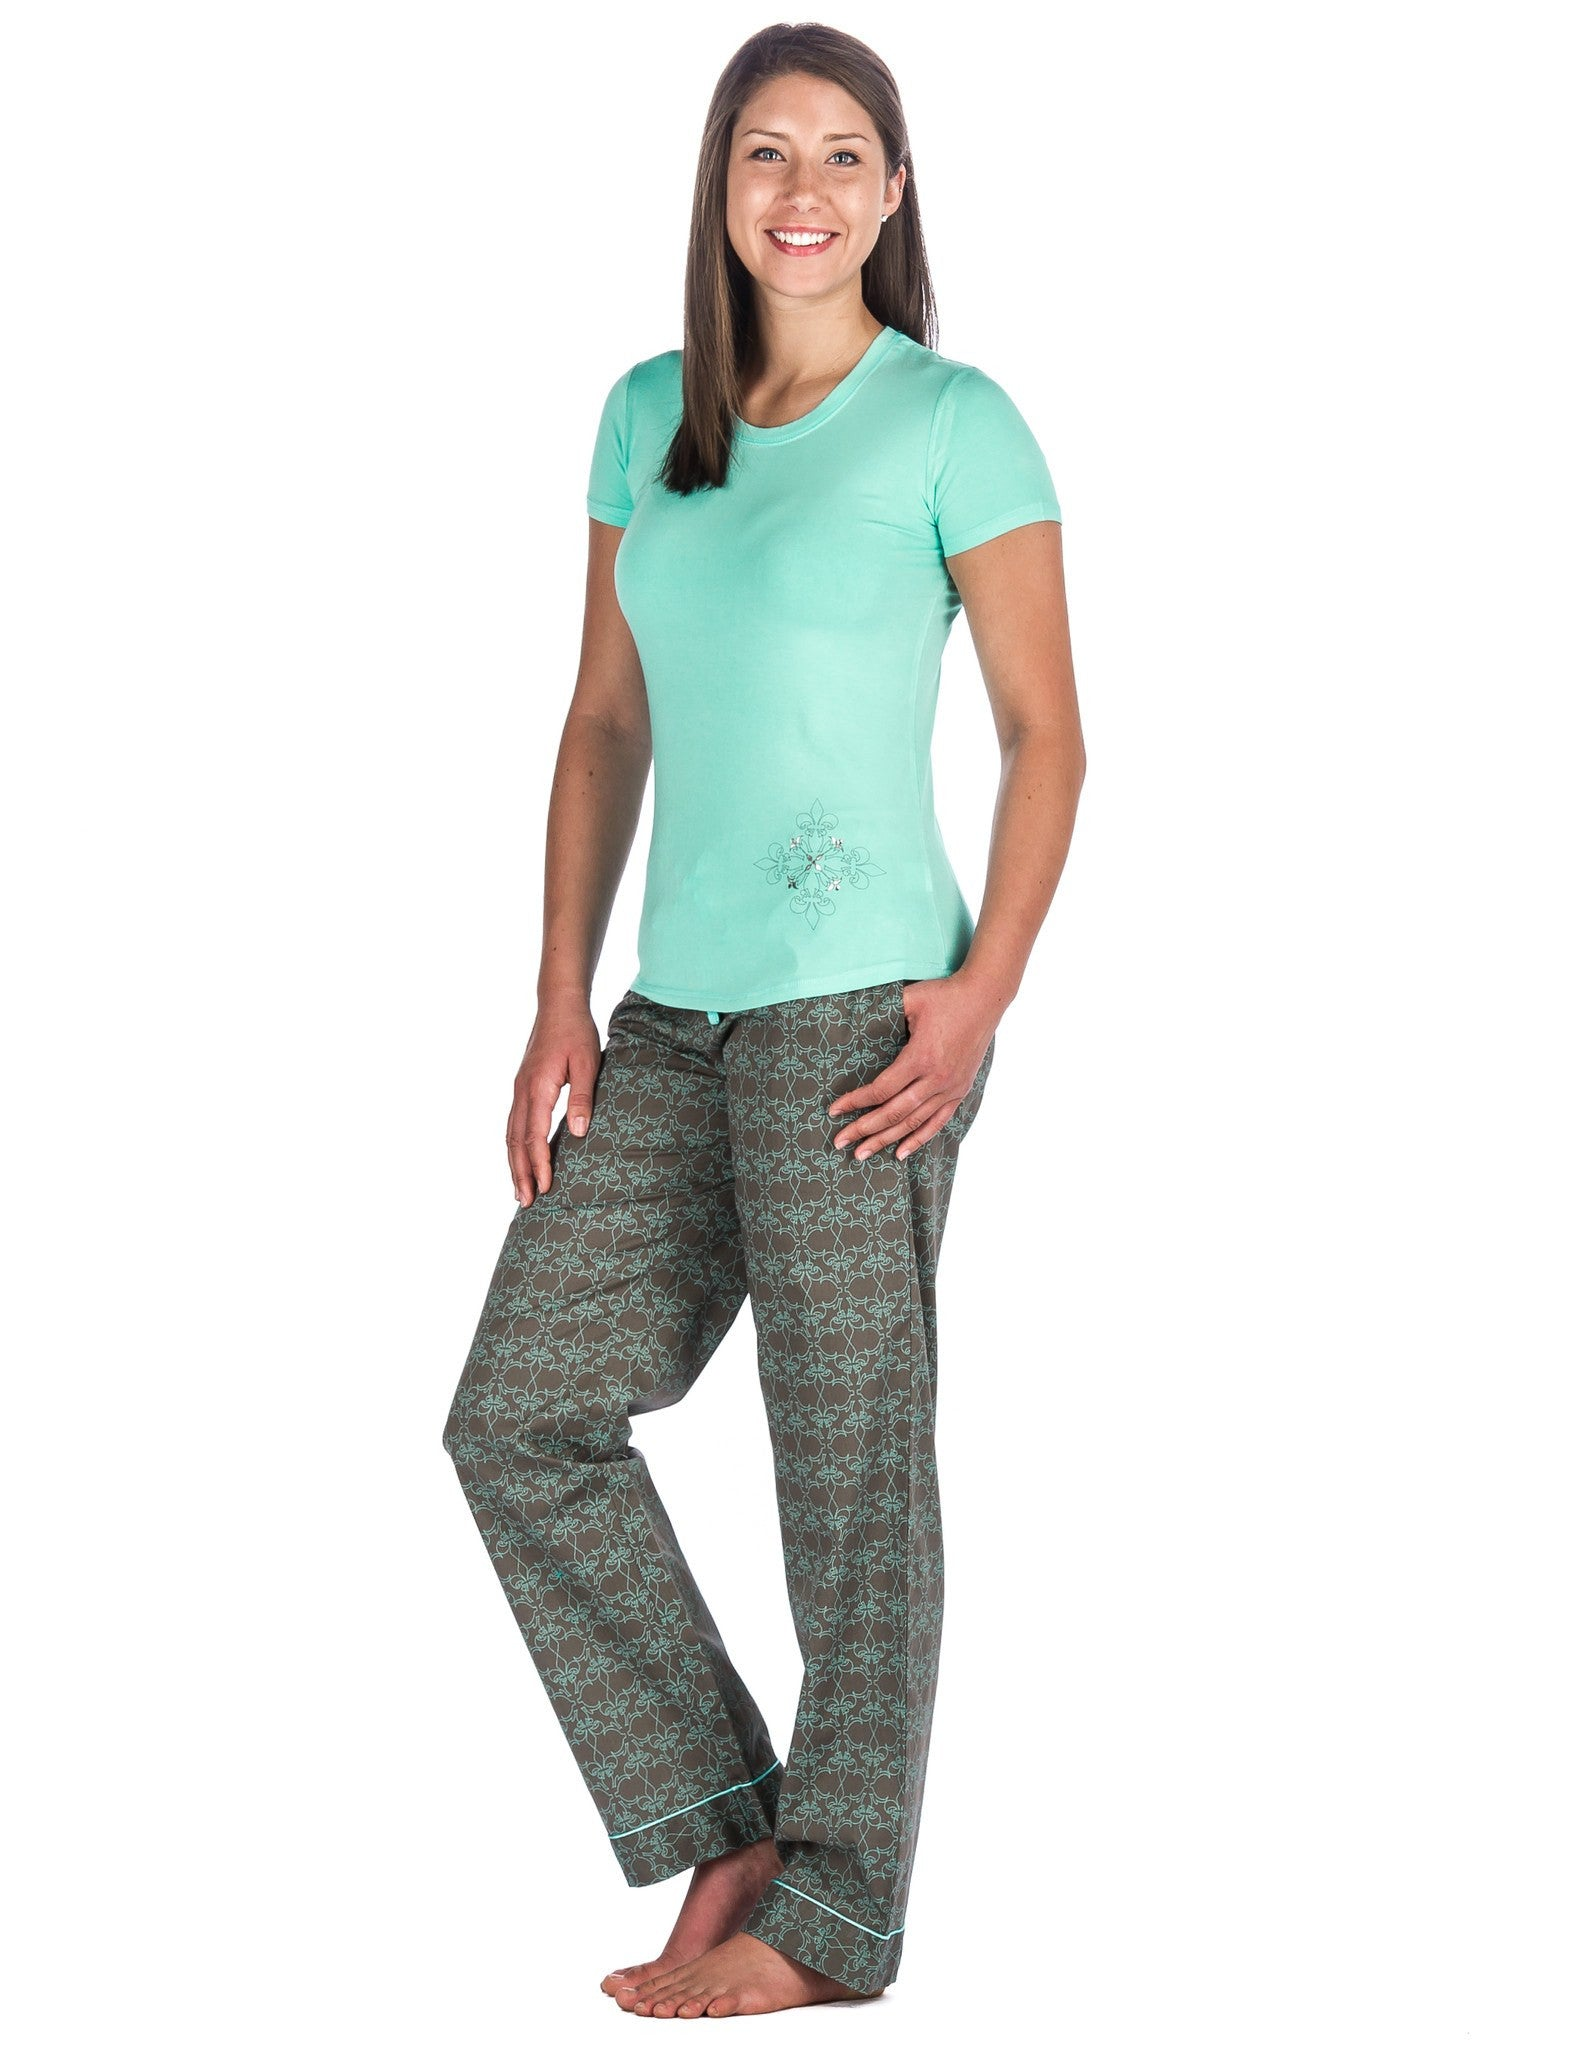 Women's Premium Cotton Poplin Lounge/Sleepwear Set